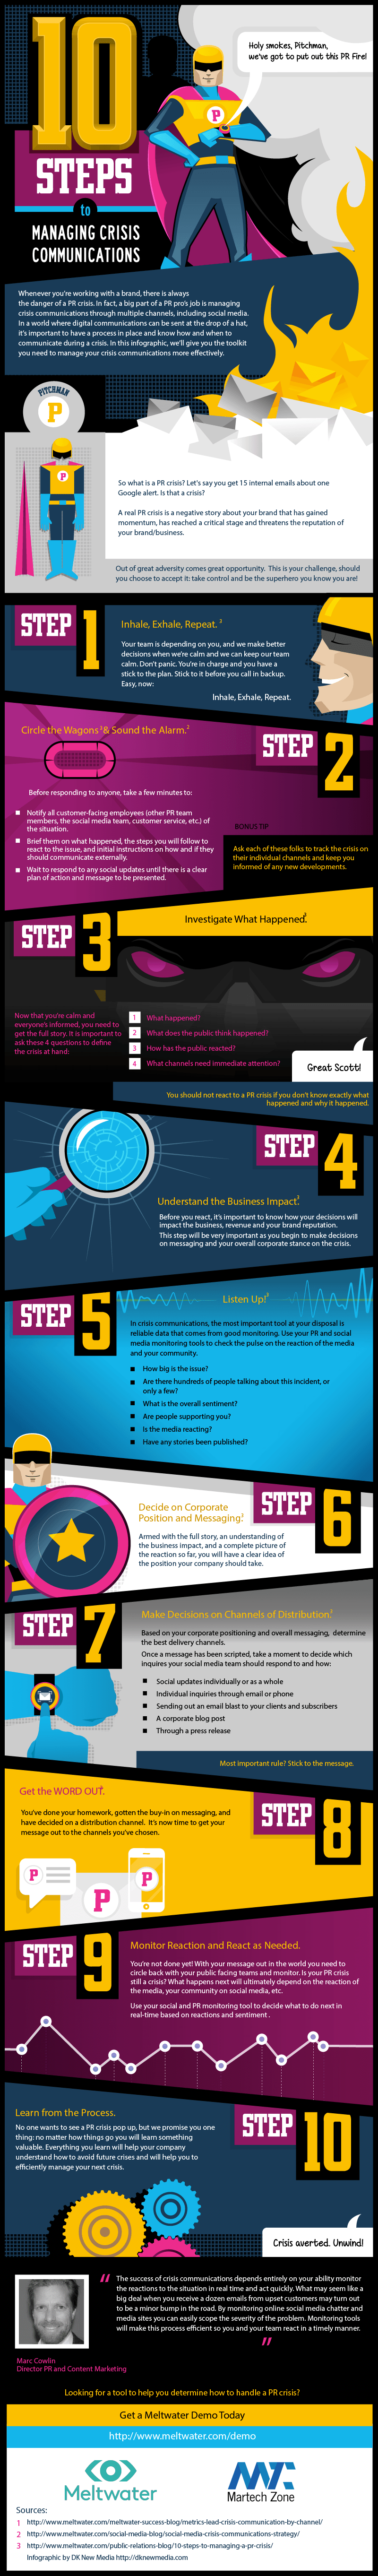 Crisis Communication Steps Infographic